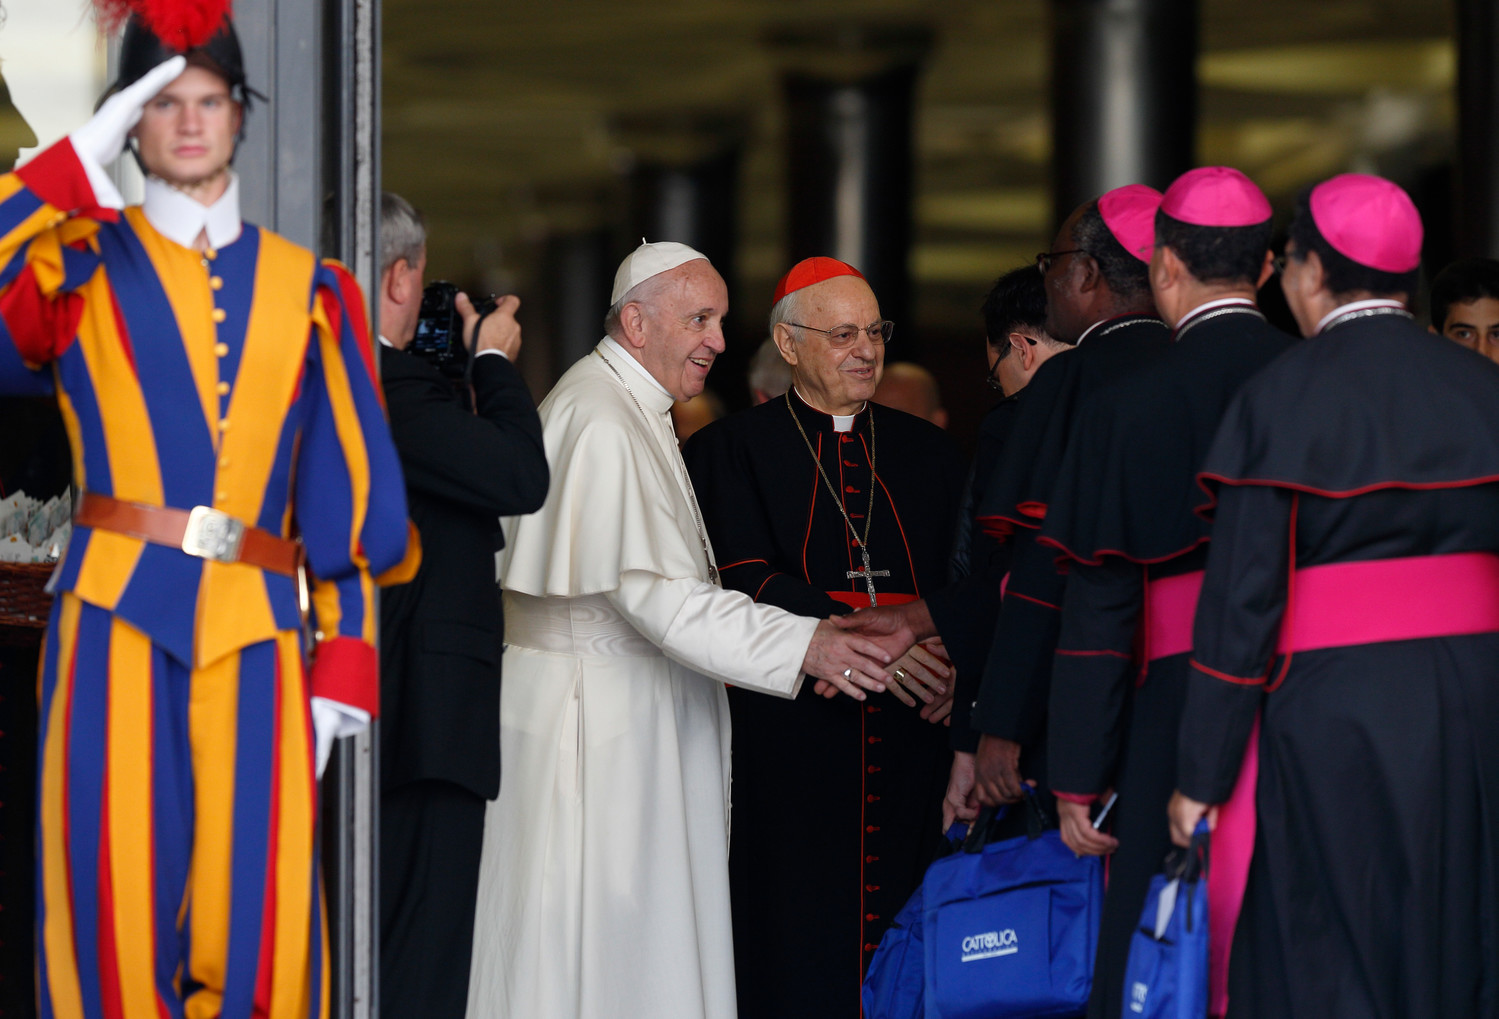 Pope Francis greets bishops as they arrive for a session of the Synod of Bishops on young people, the faith and vocational discernment at the Vatican Oct. 16.